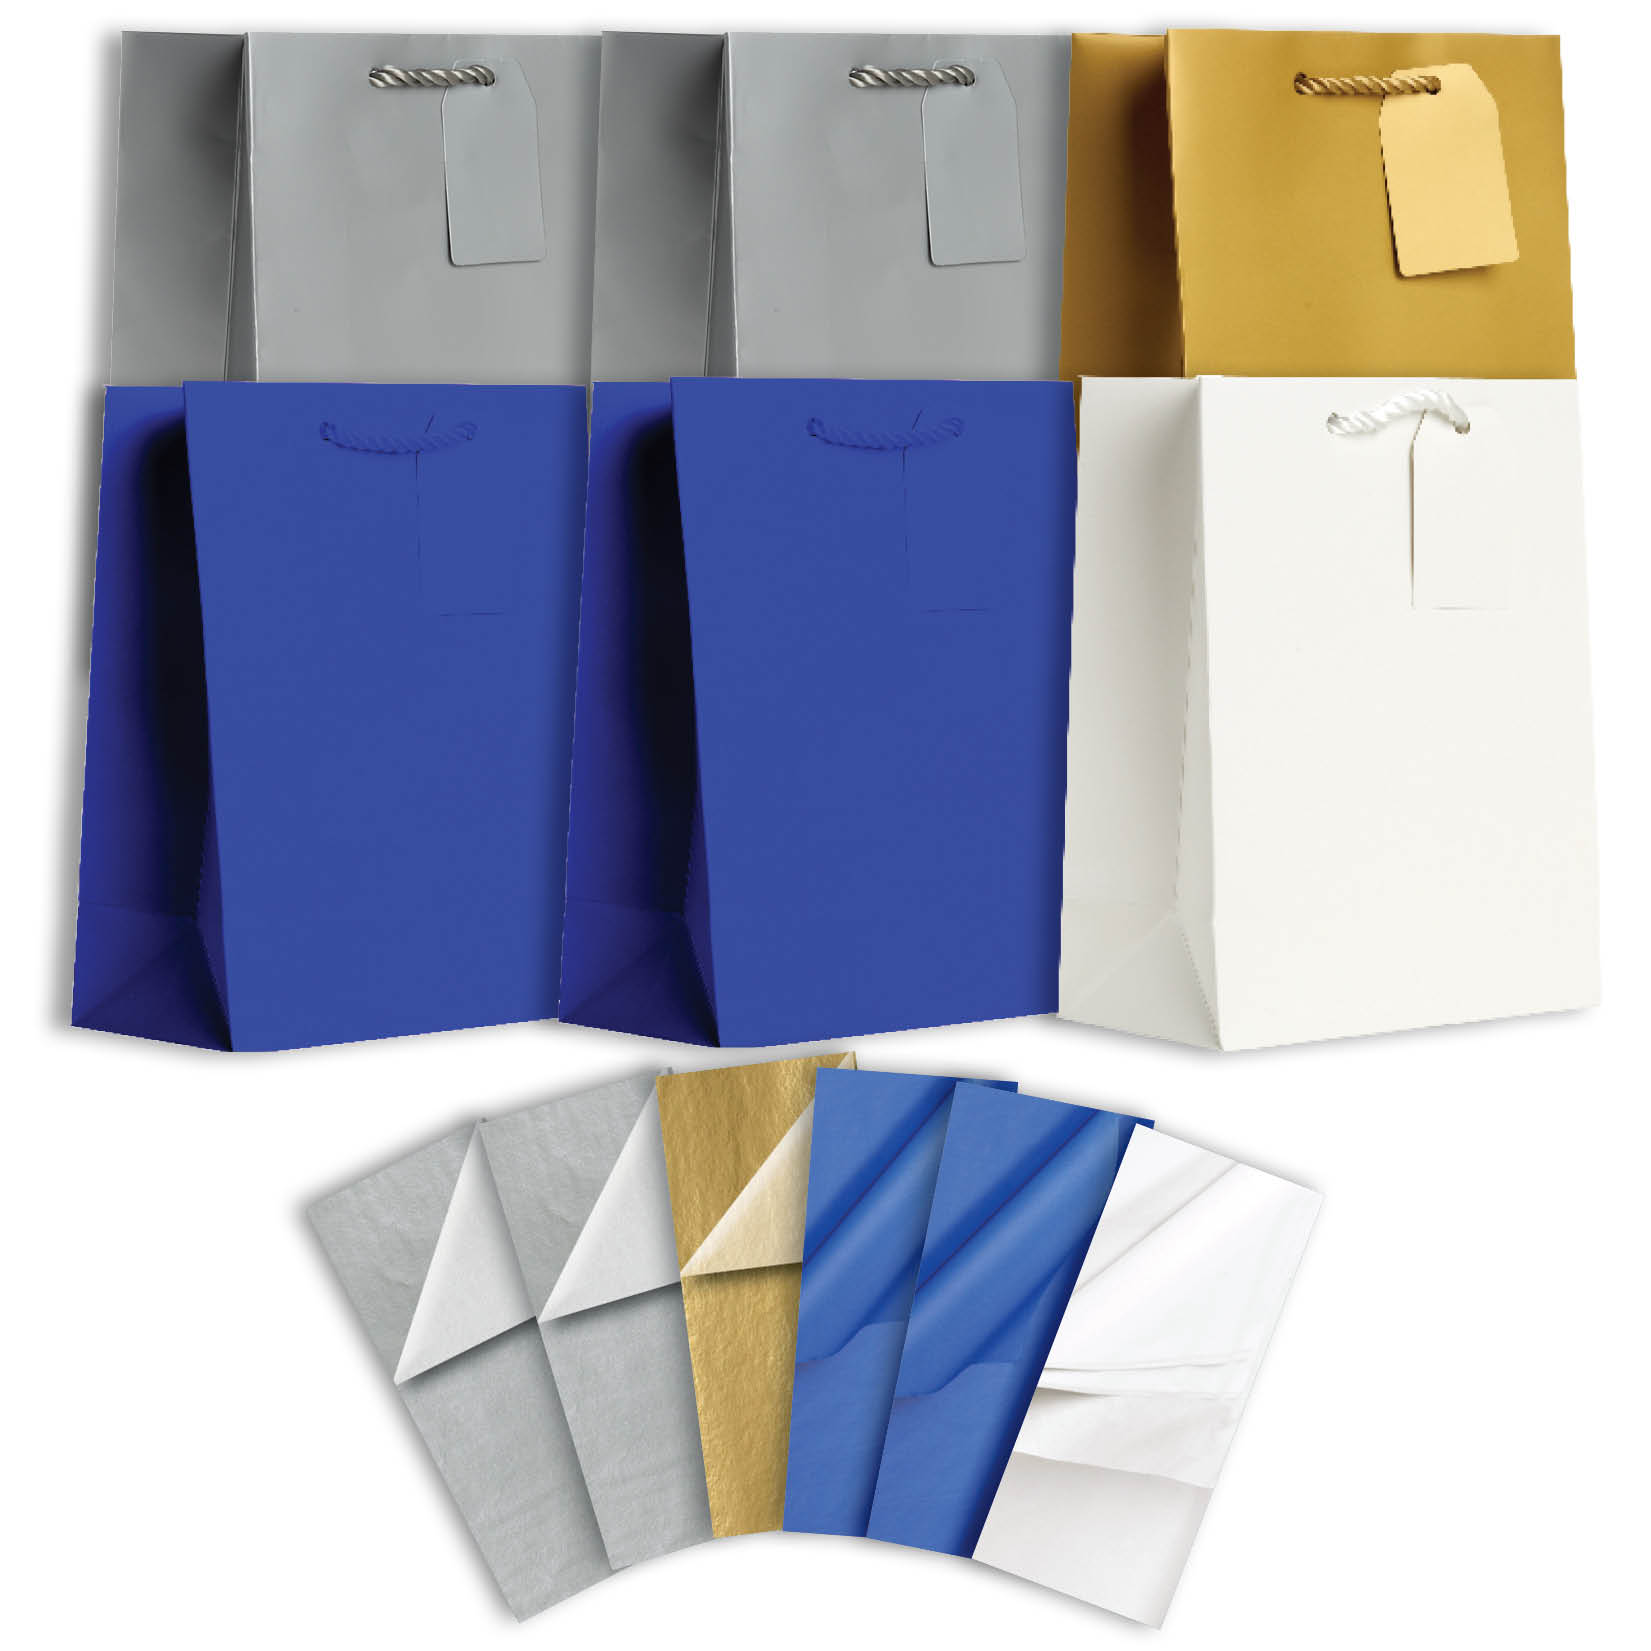 Jillson & Roberts Solid Color Matte Medium Gift Bag & Tissue Assortment, Hanukkah (6 Bags)